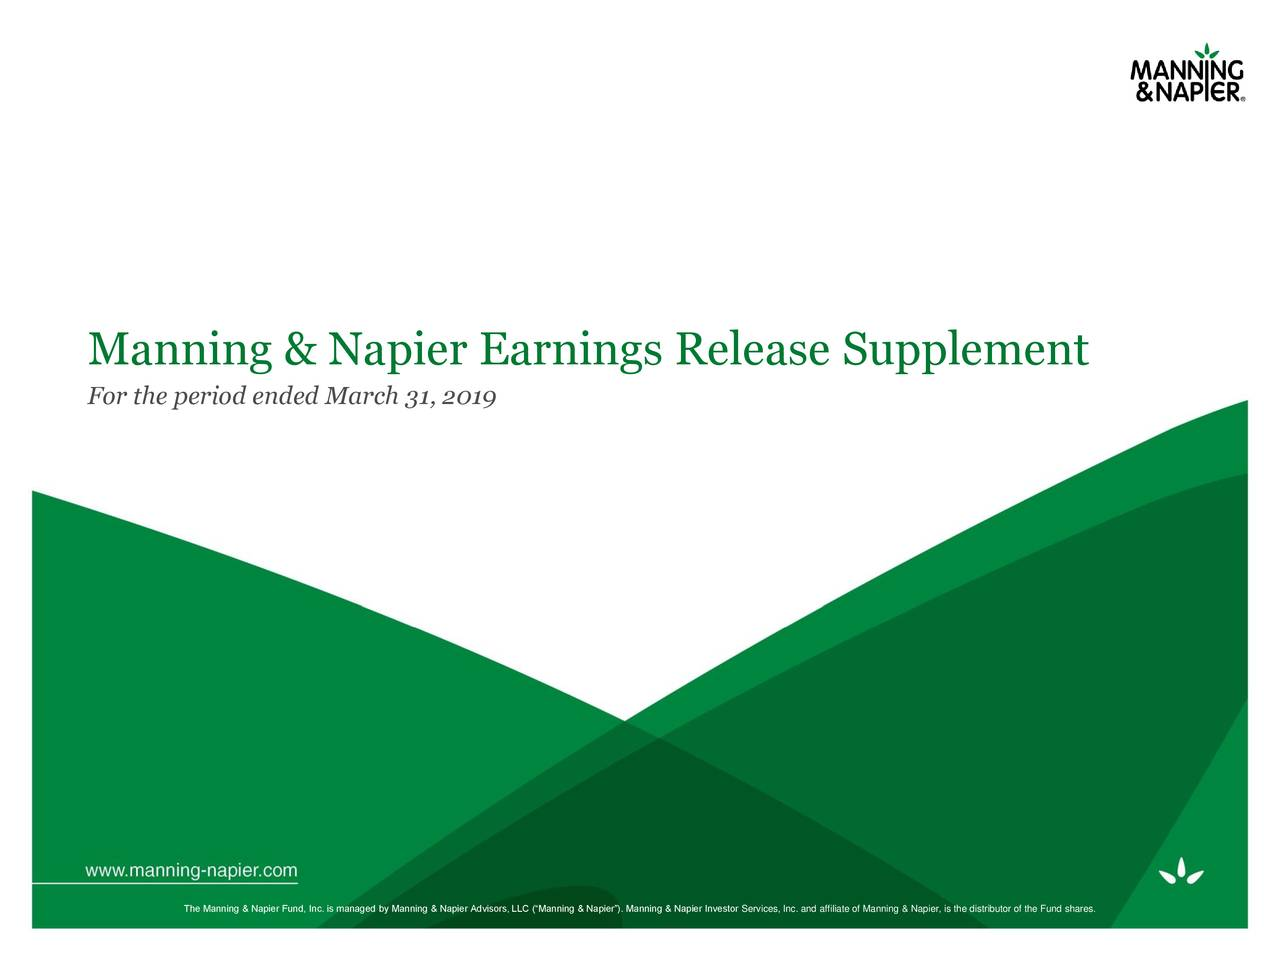 """For the period ended March 31, 2019 The Manning & Napier Fund, Inc. is managed by Manning & Napier Advisors, LLC (""""Manning & Napier""""). Manning & Napier Investor Services, Inc. and affiliate of Manning & Napier, is the distributor of the Fund shares."""